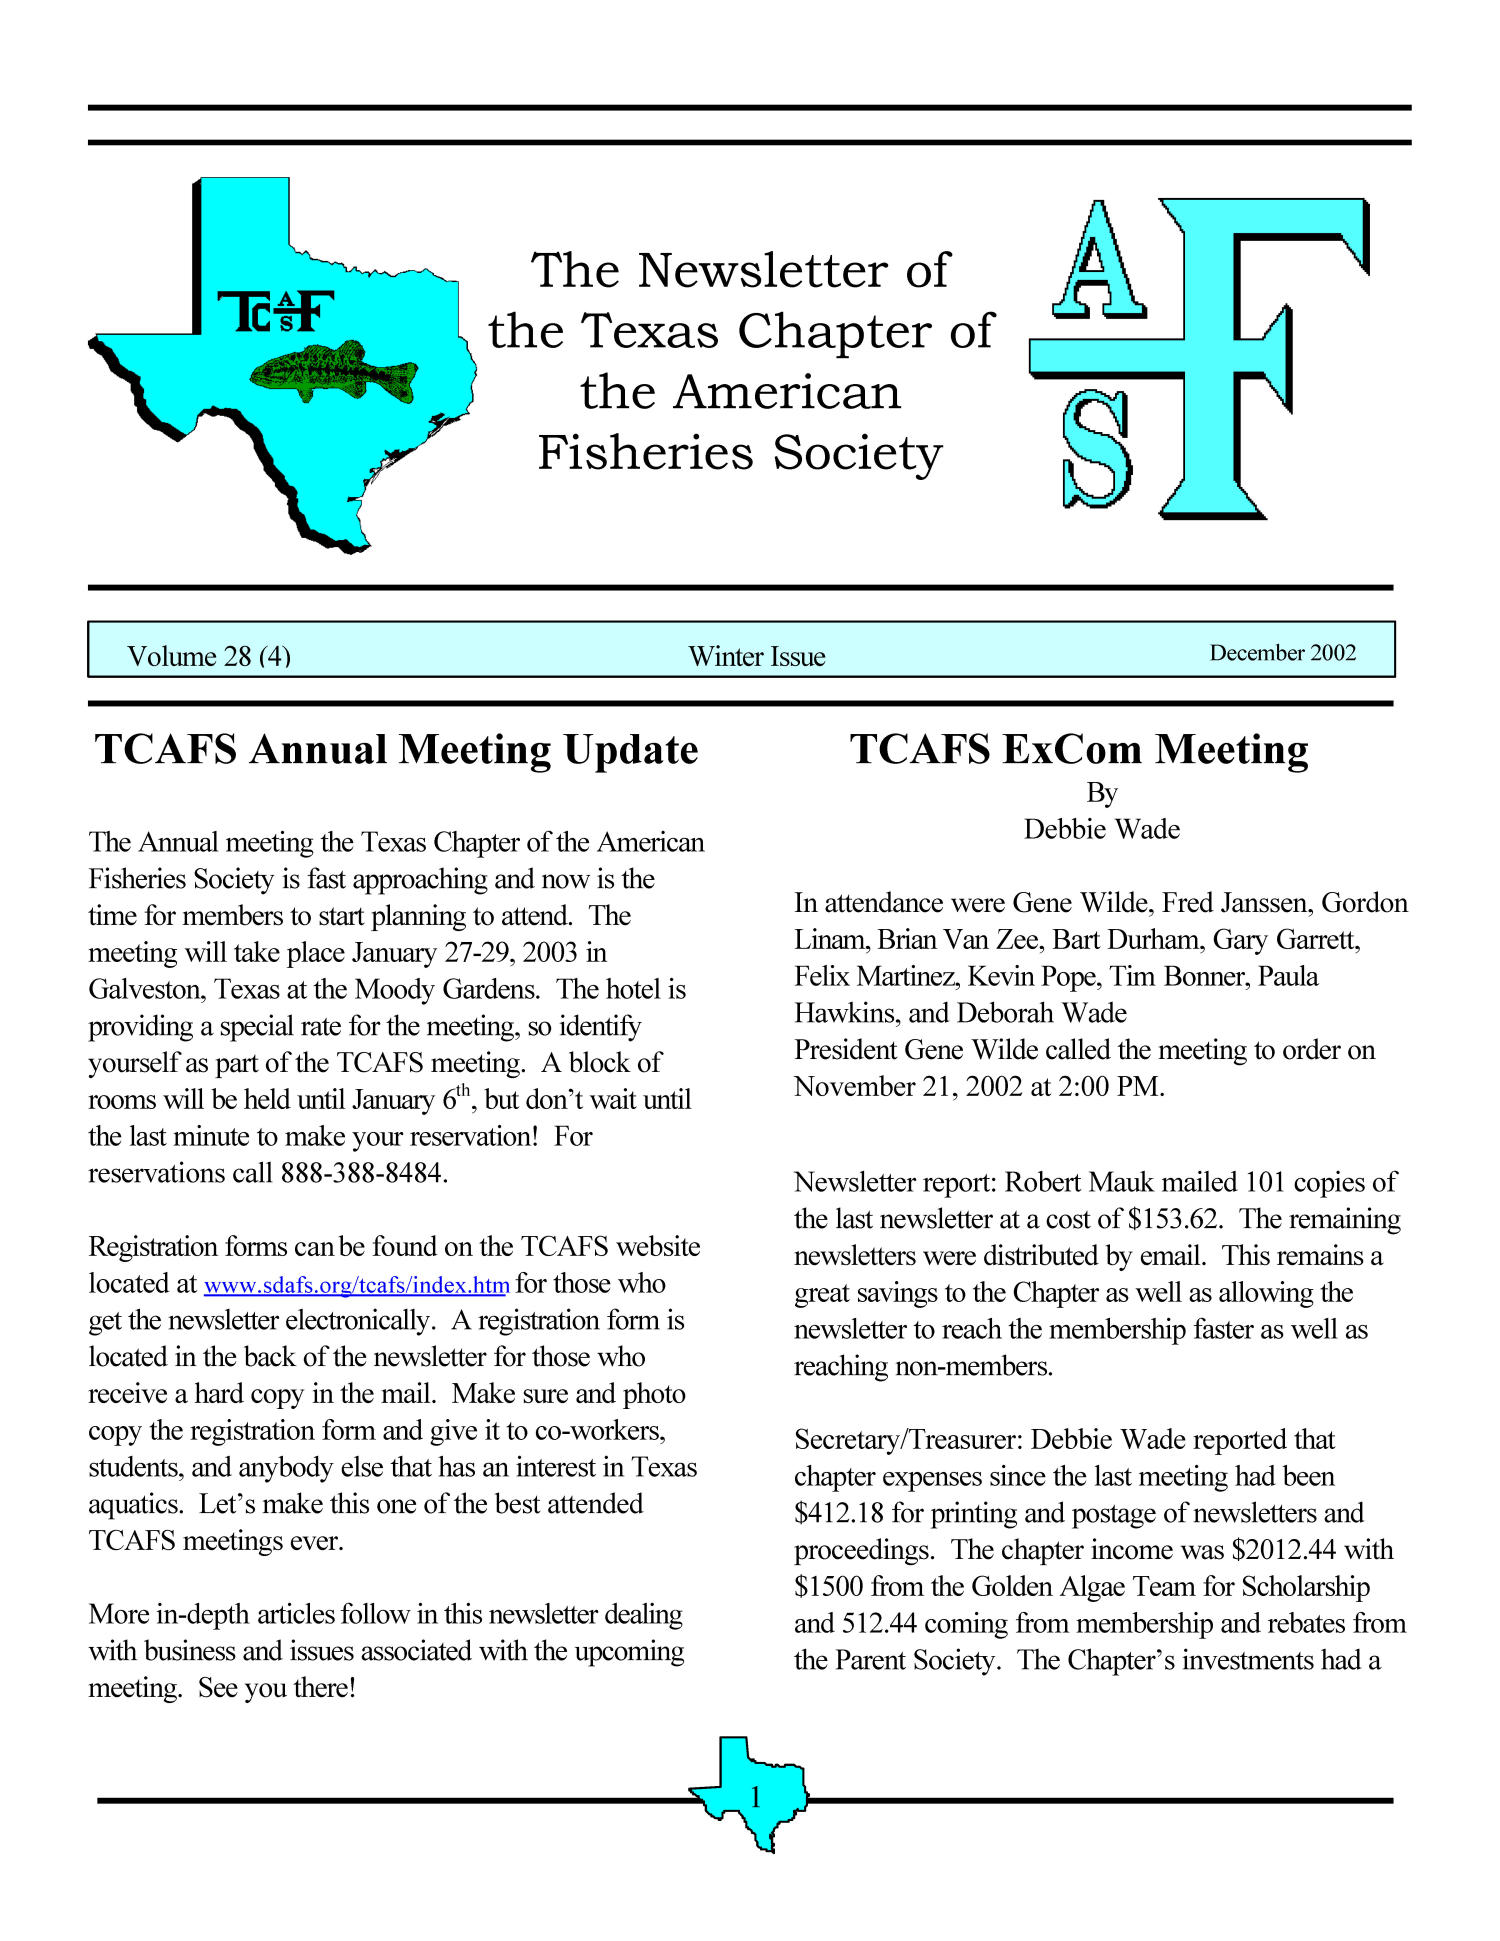 The Newsletter of the Texas Chapter of the American Fisheries Society, Volume 28, Number 4, 2002                                                                                                      1